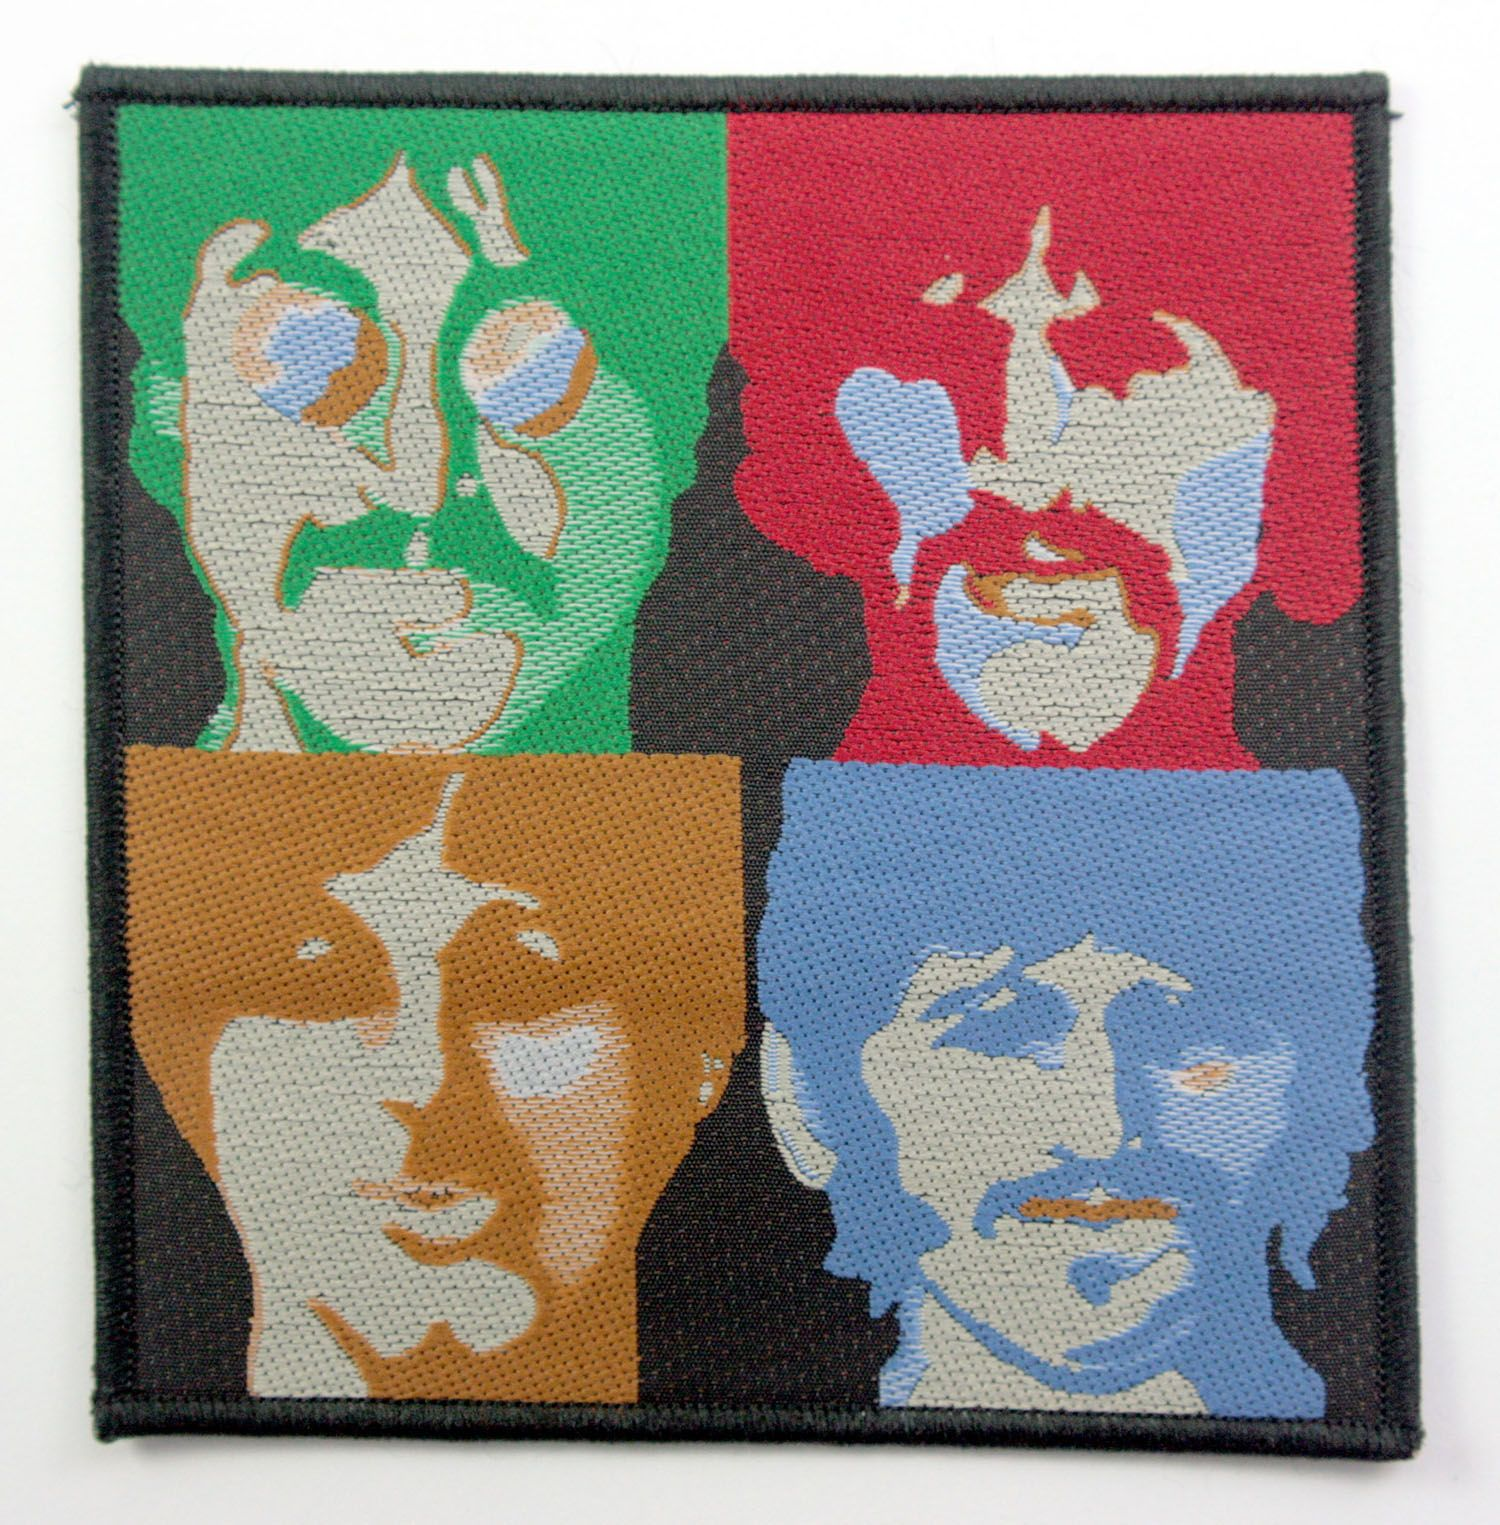 The Beatles Woven Patch